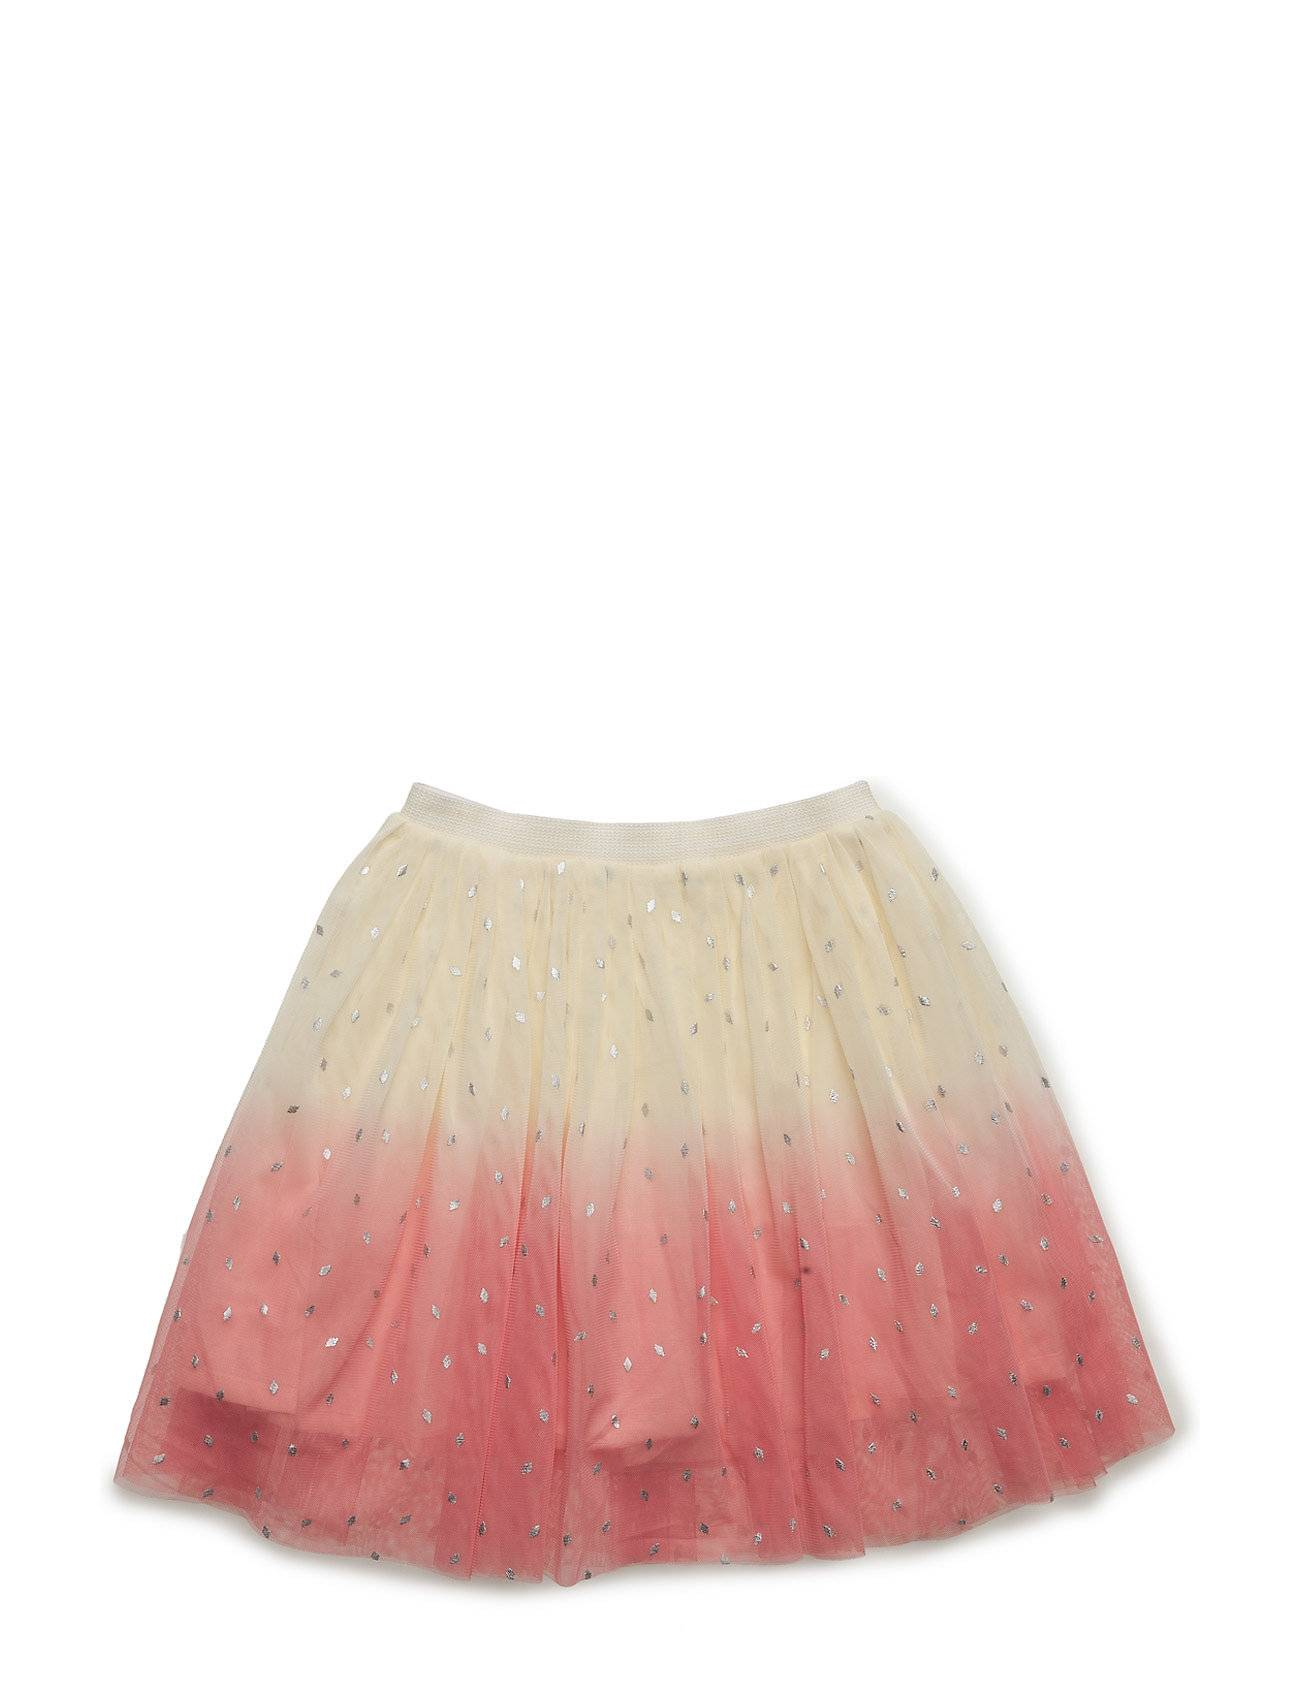 Mini A Ture Eveline, K Skirts